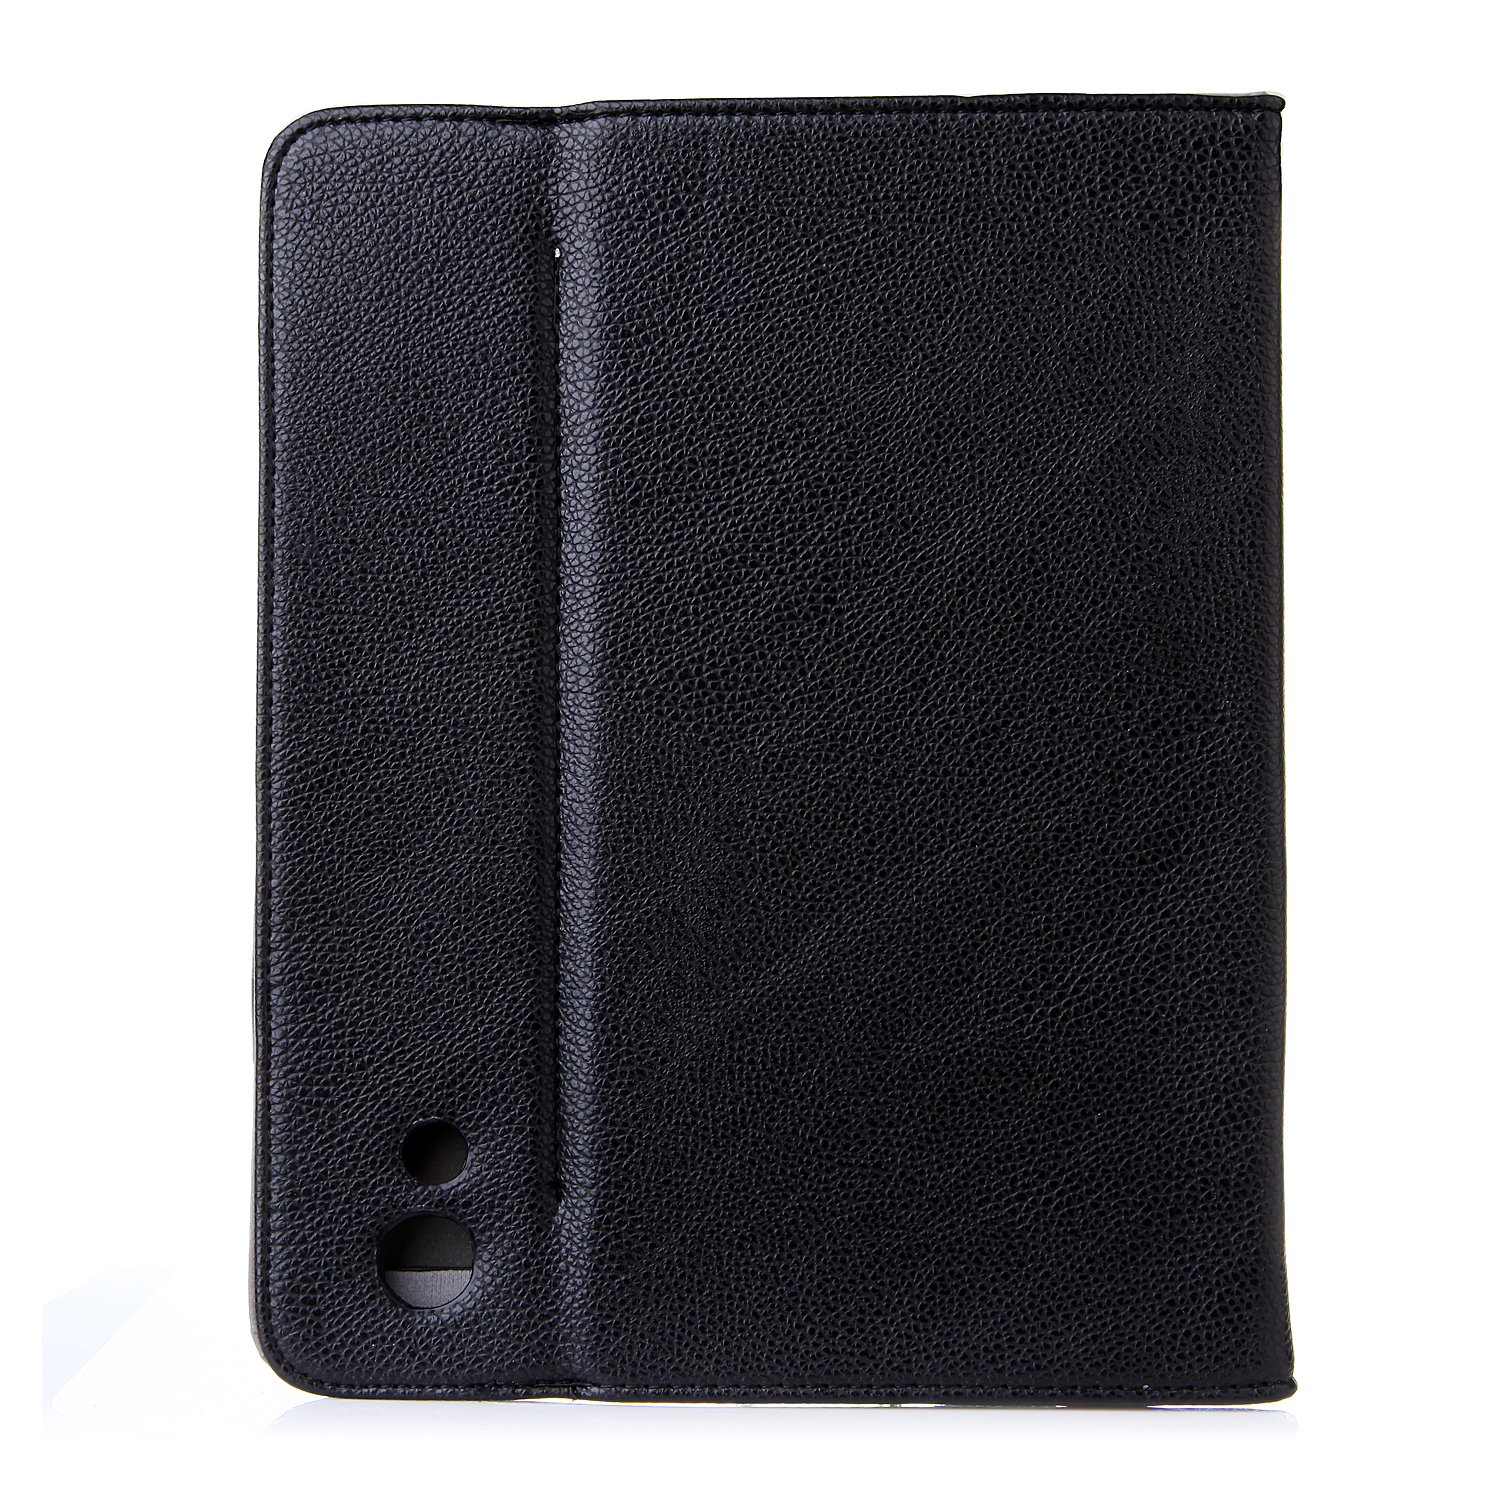 Fashion Leather Protective Flip Cover Case For PIPO P1Tablet Black